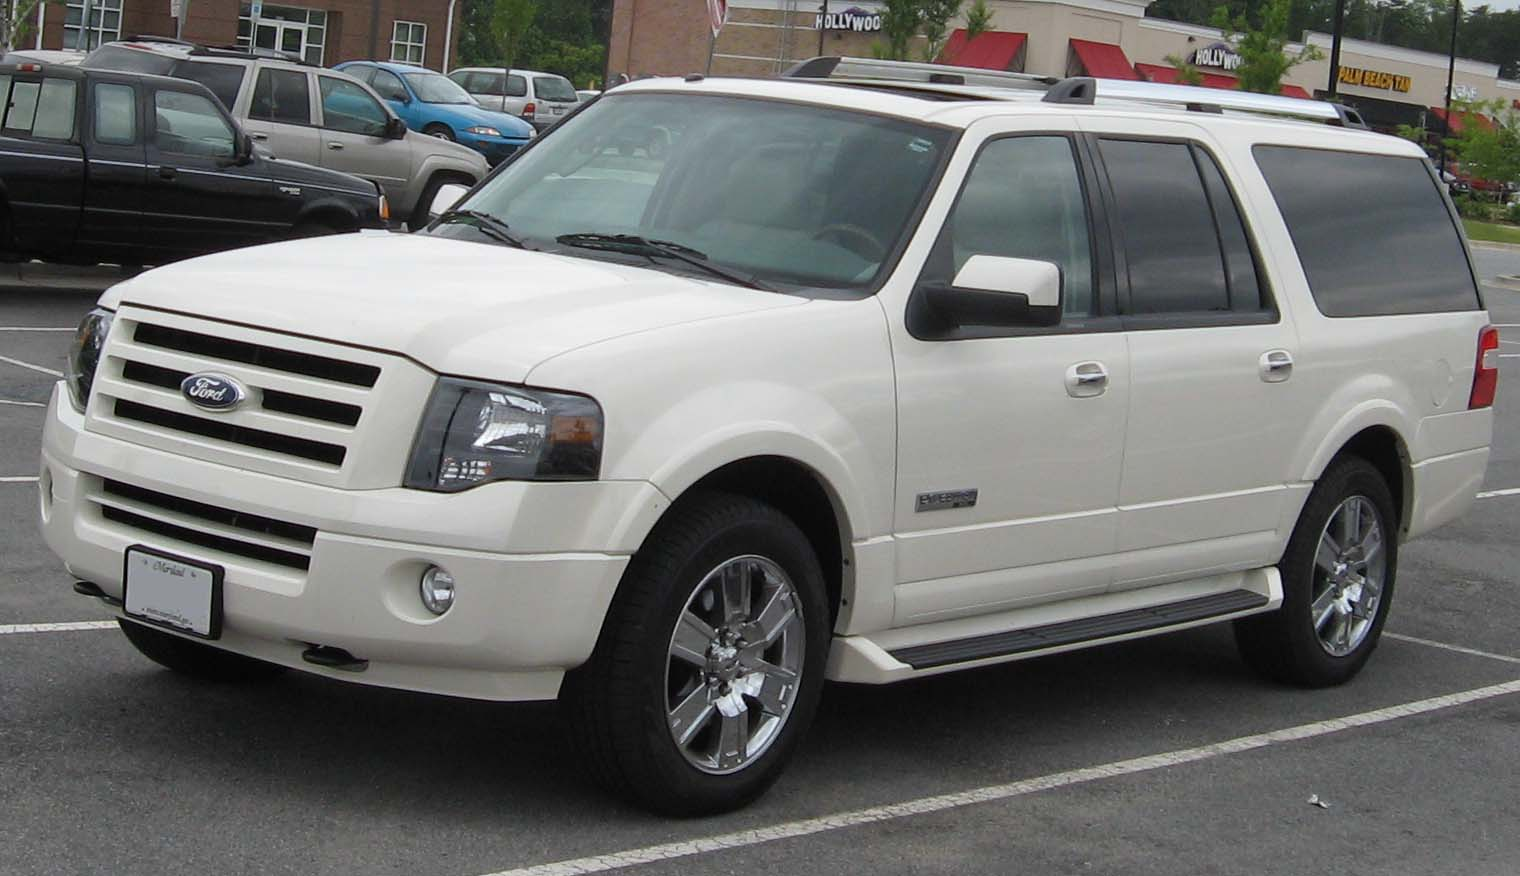 Ford expedition 2011 photo - 7